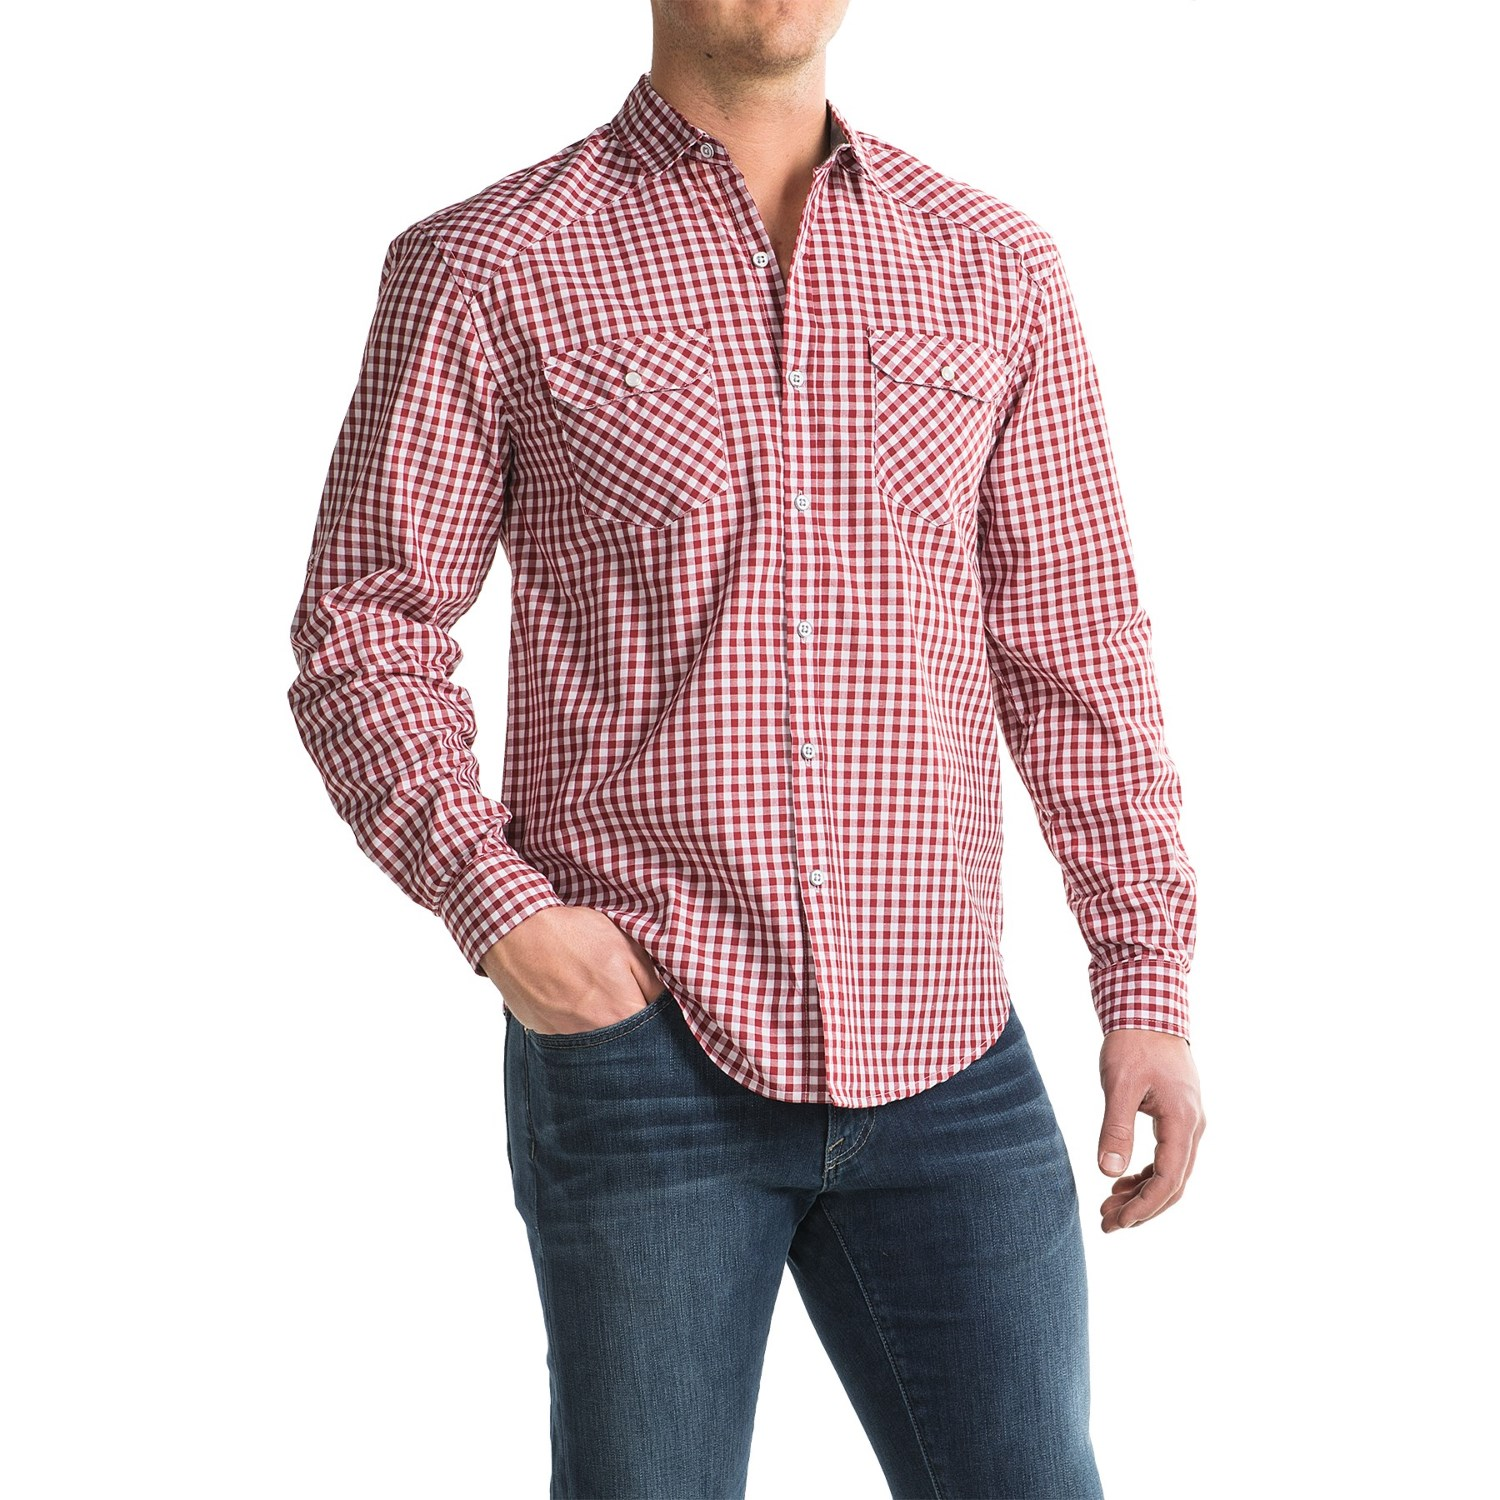 Bruno Gingham Button Up Shirt For Men Save 50